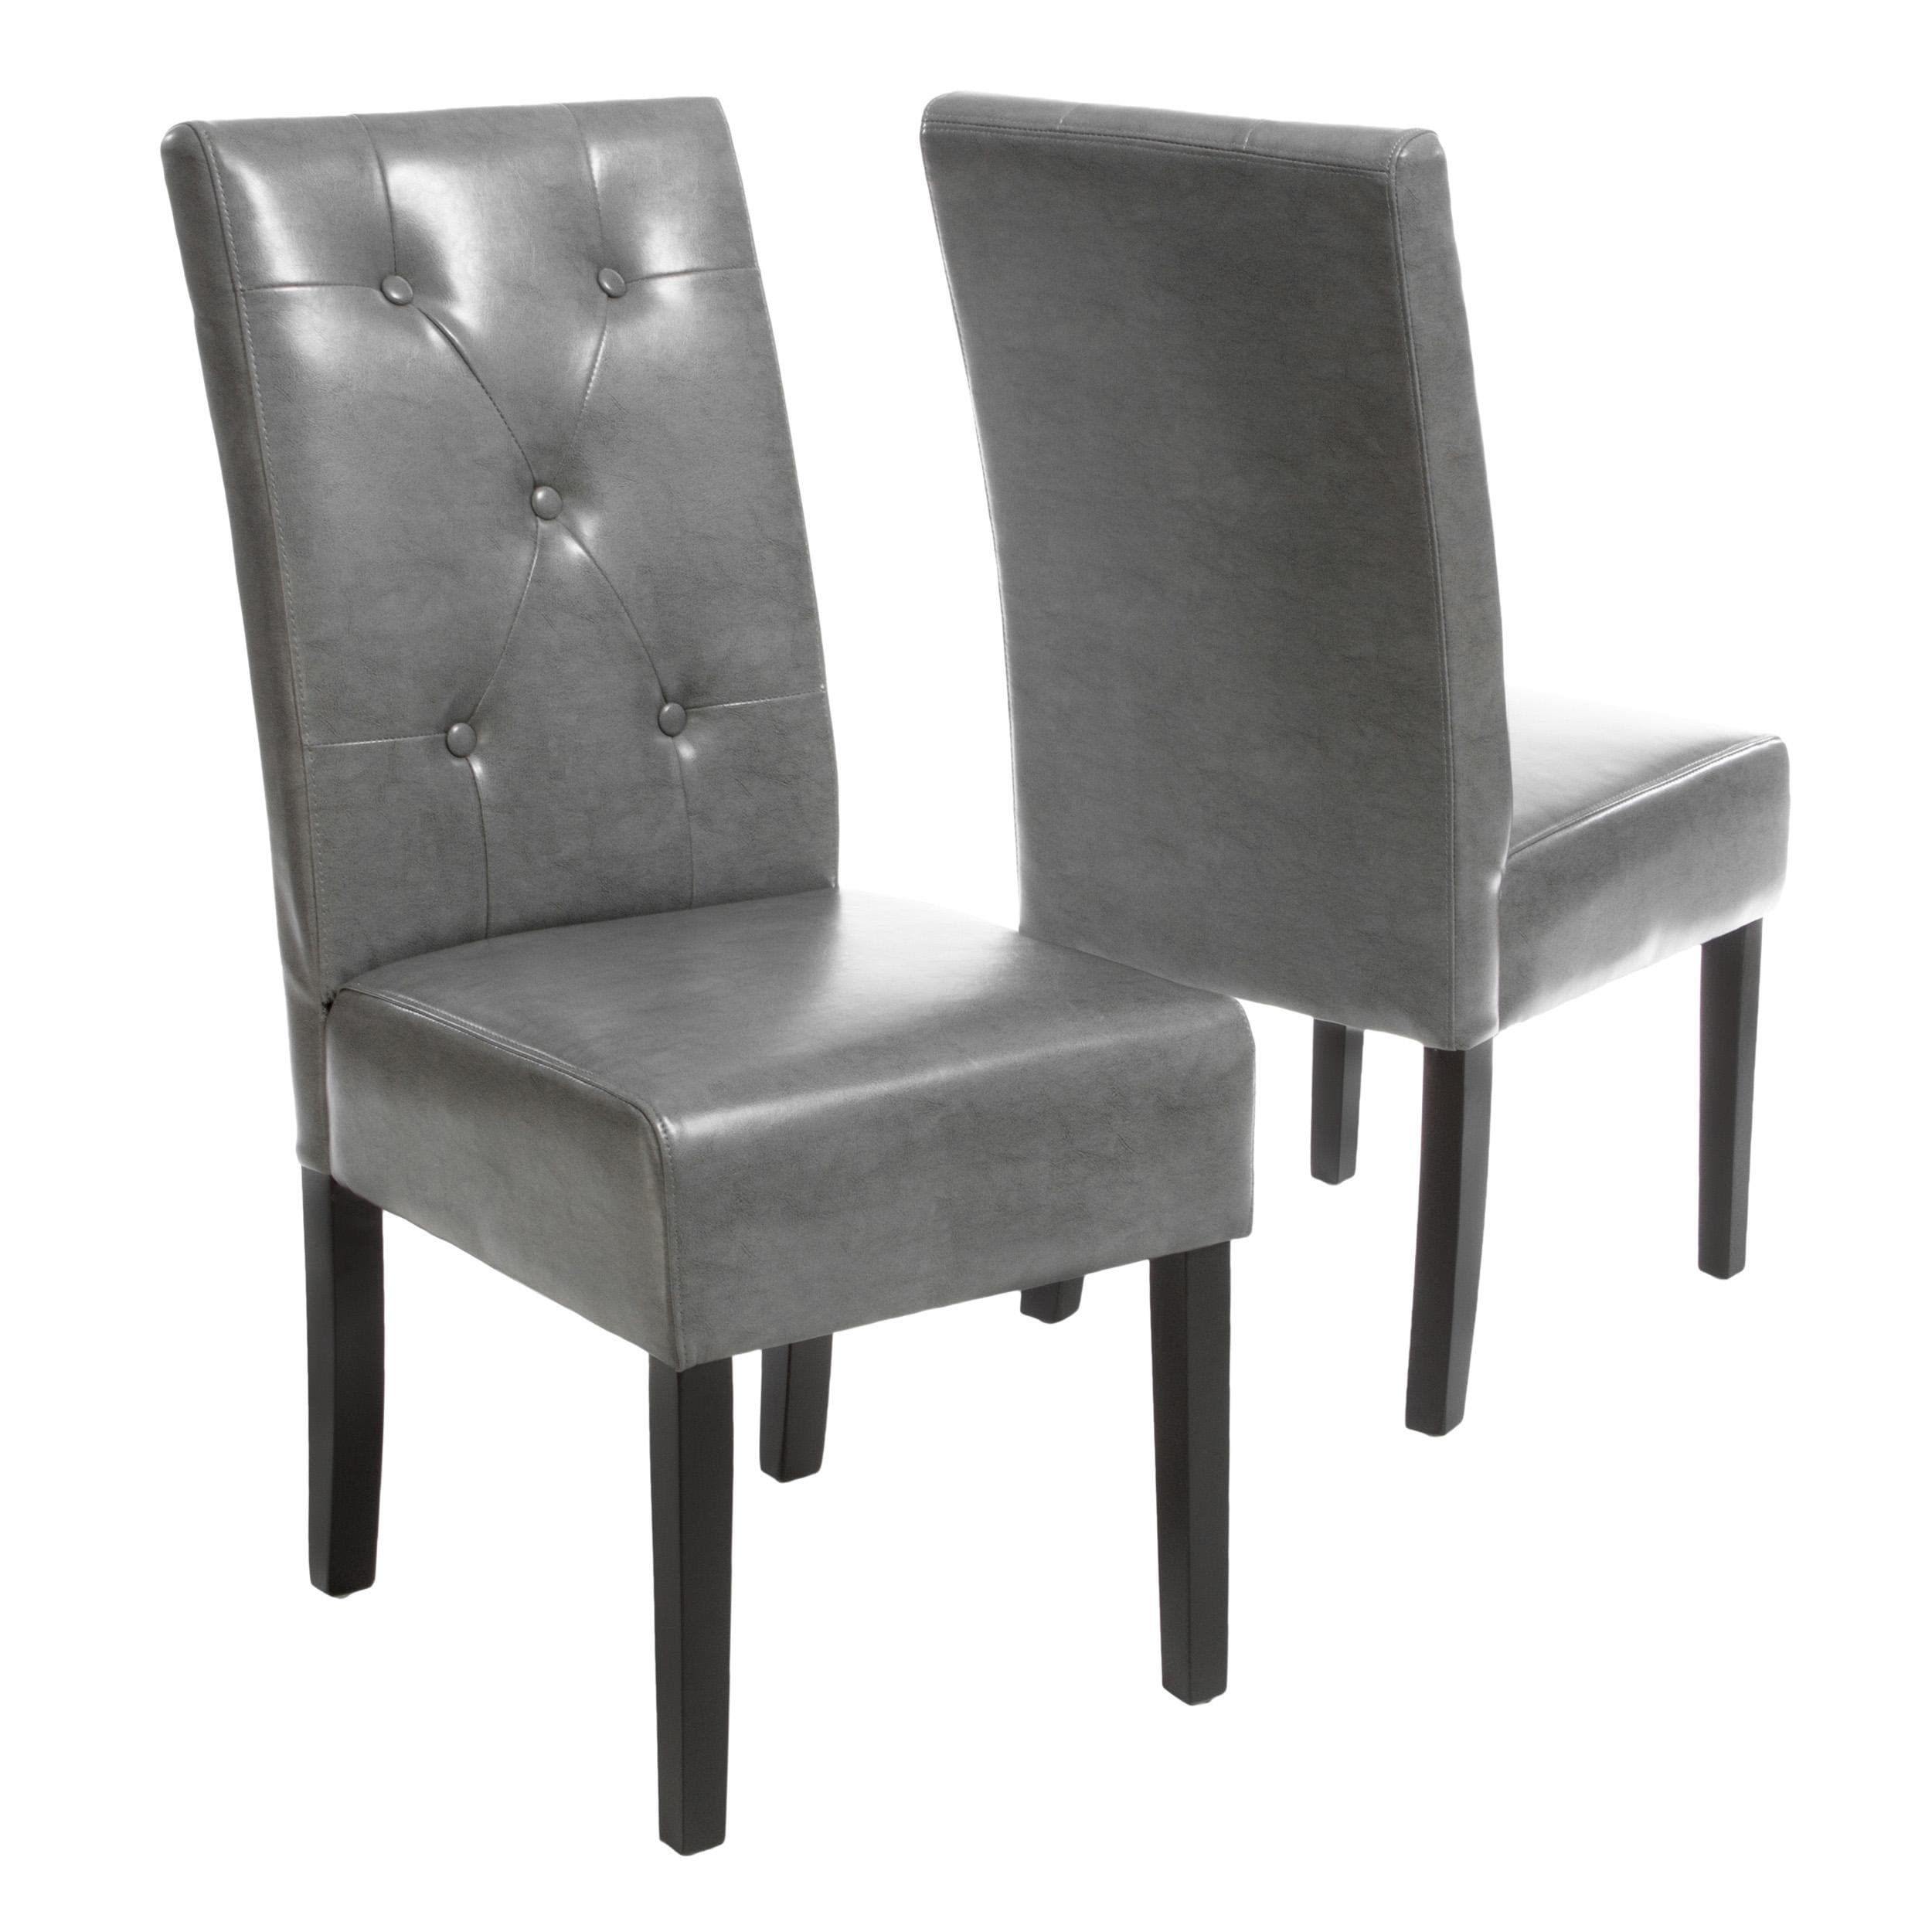 gray and white dining chairs oval dining shop taylor grey bonded leather dining chair set of 2 by christopher knight home on sale free shipping today overstockcom 8420017